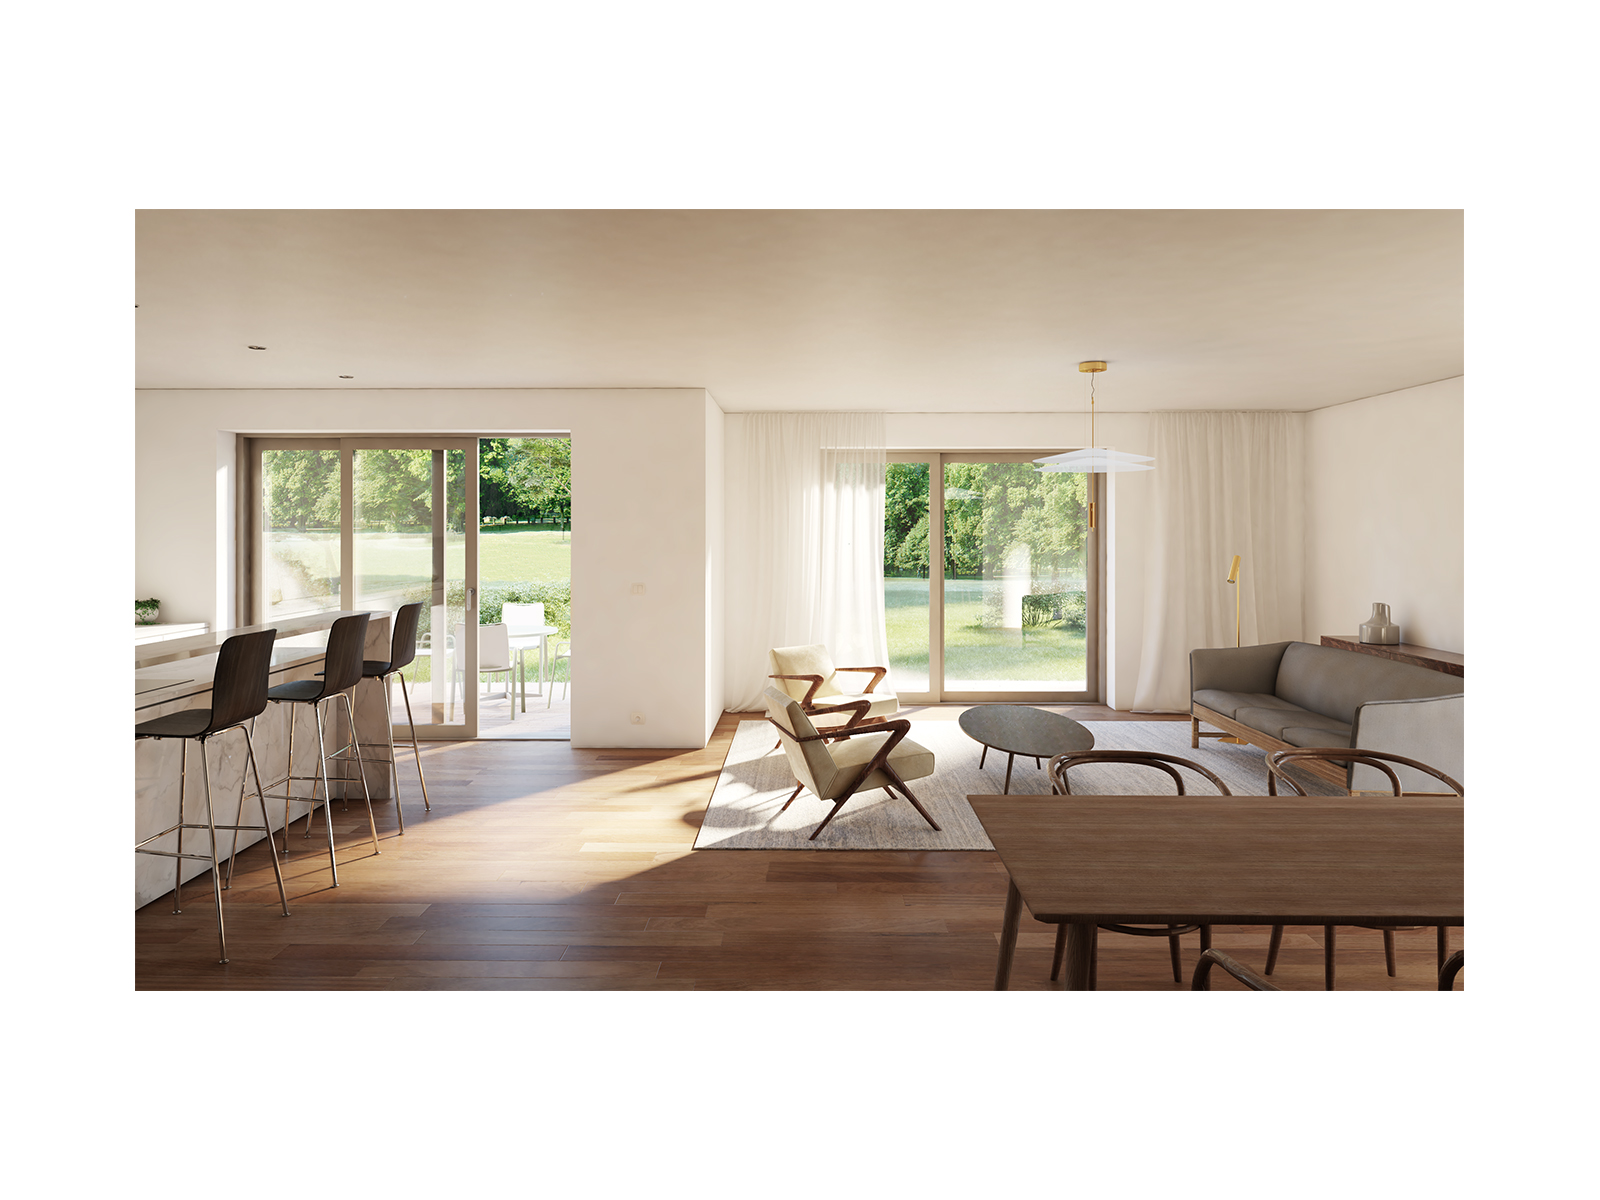 3D Images for an apartment in Luxembourg.